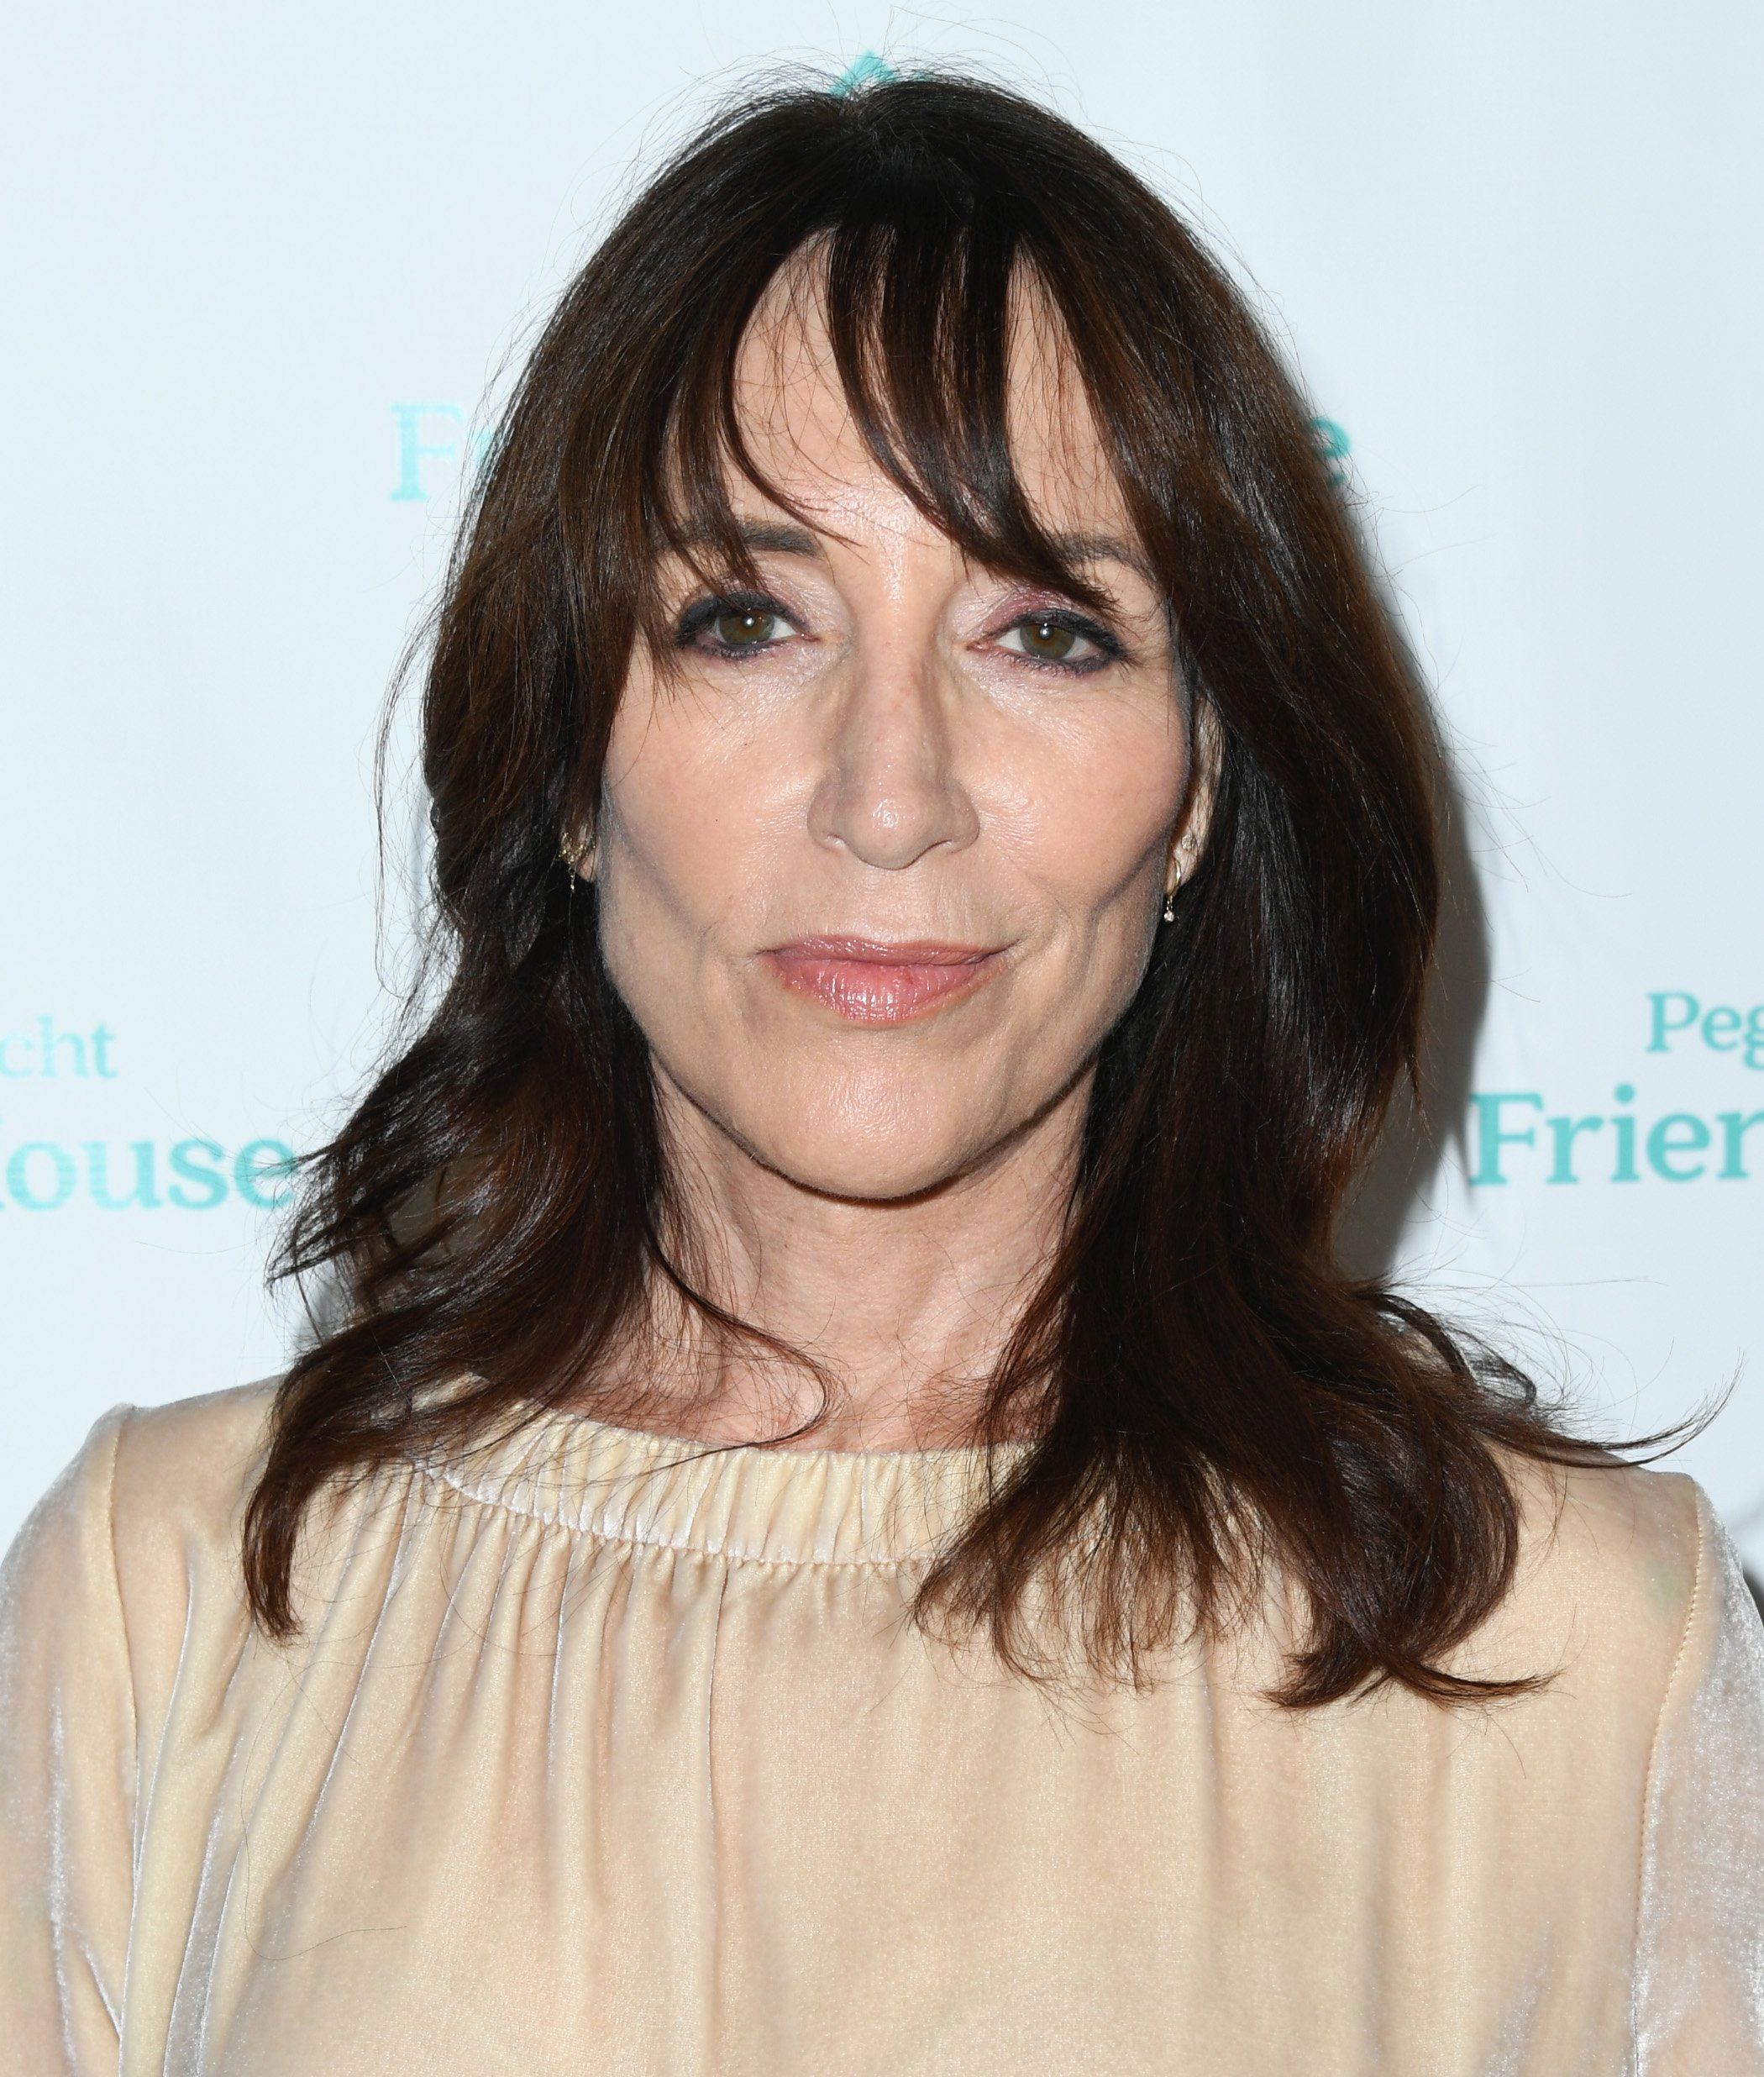 Katey Sagal at Friendly House 30th Annual Awards Luncheon | Source: Getty Images